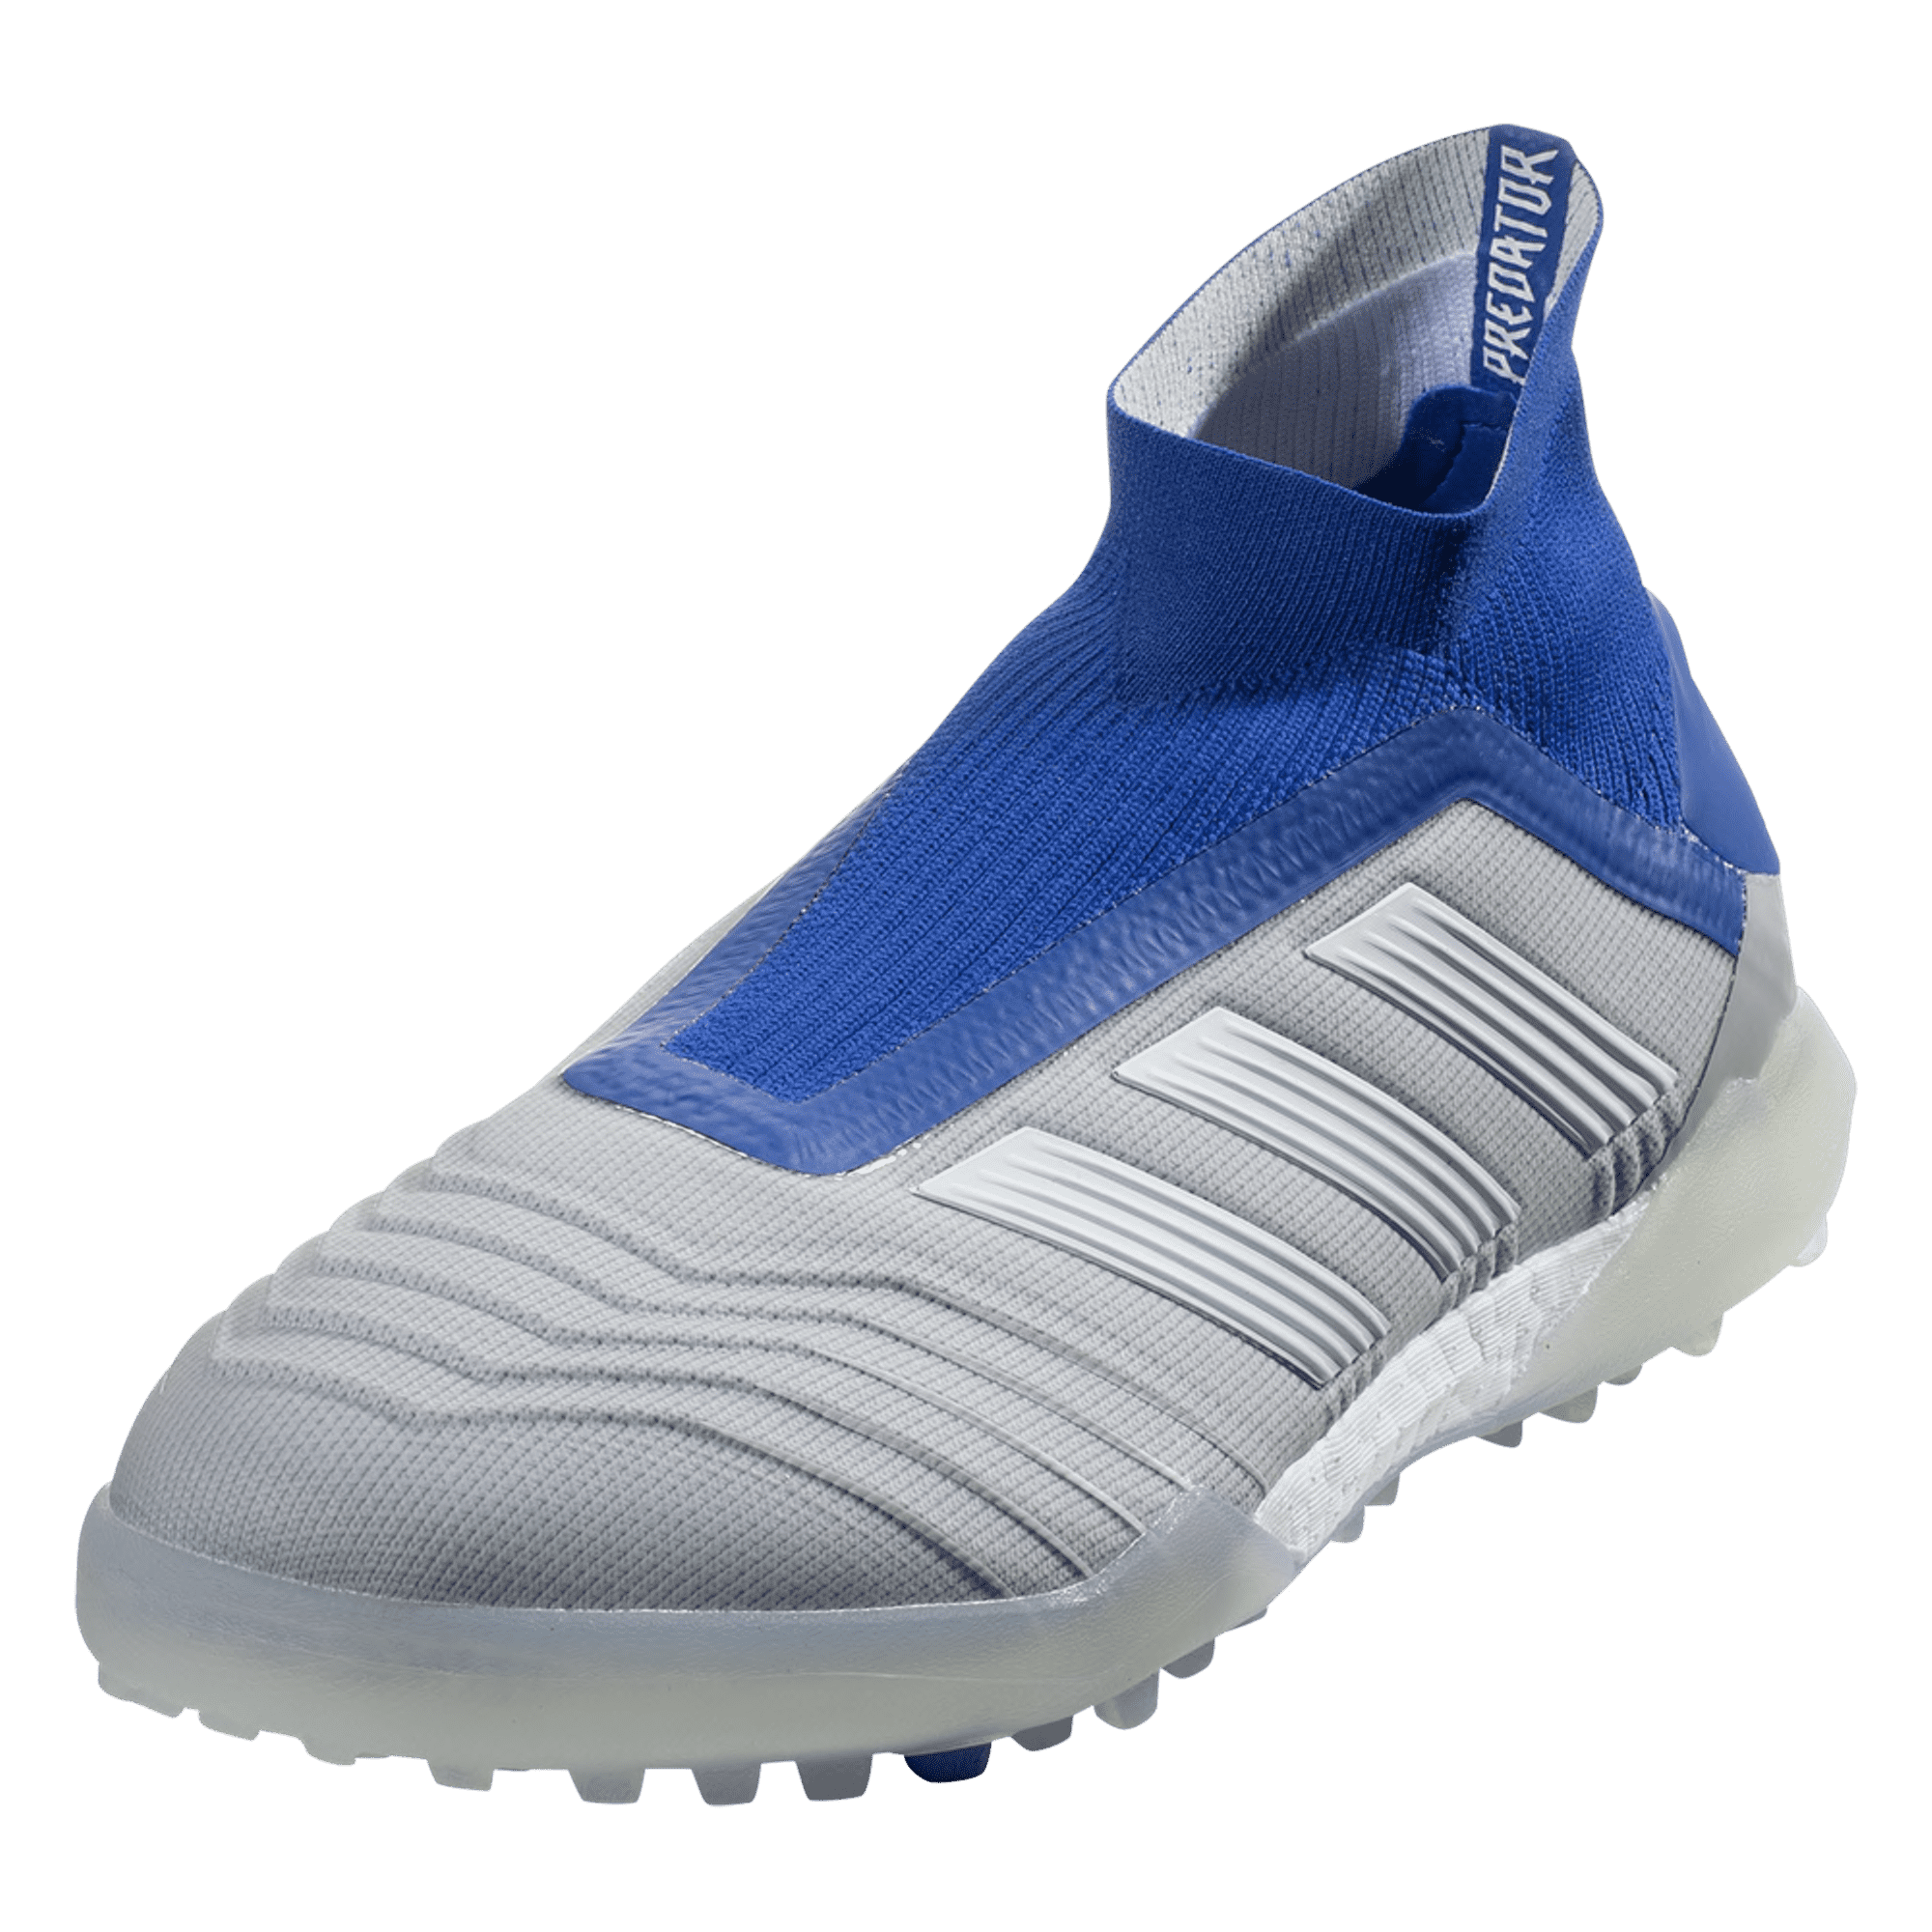 adidas Predator Tango 19+ TF Artificial Turf Soccer Shoe - Grey/White/Blue